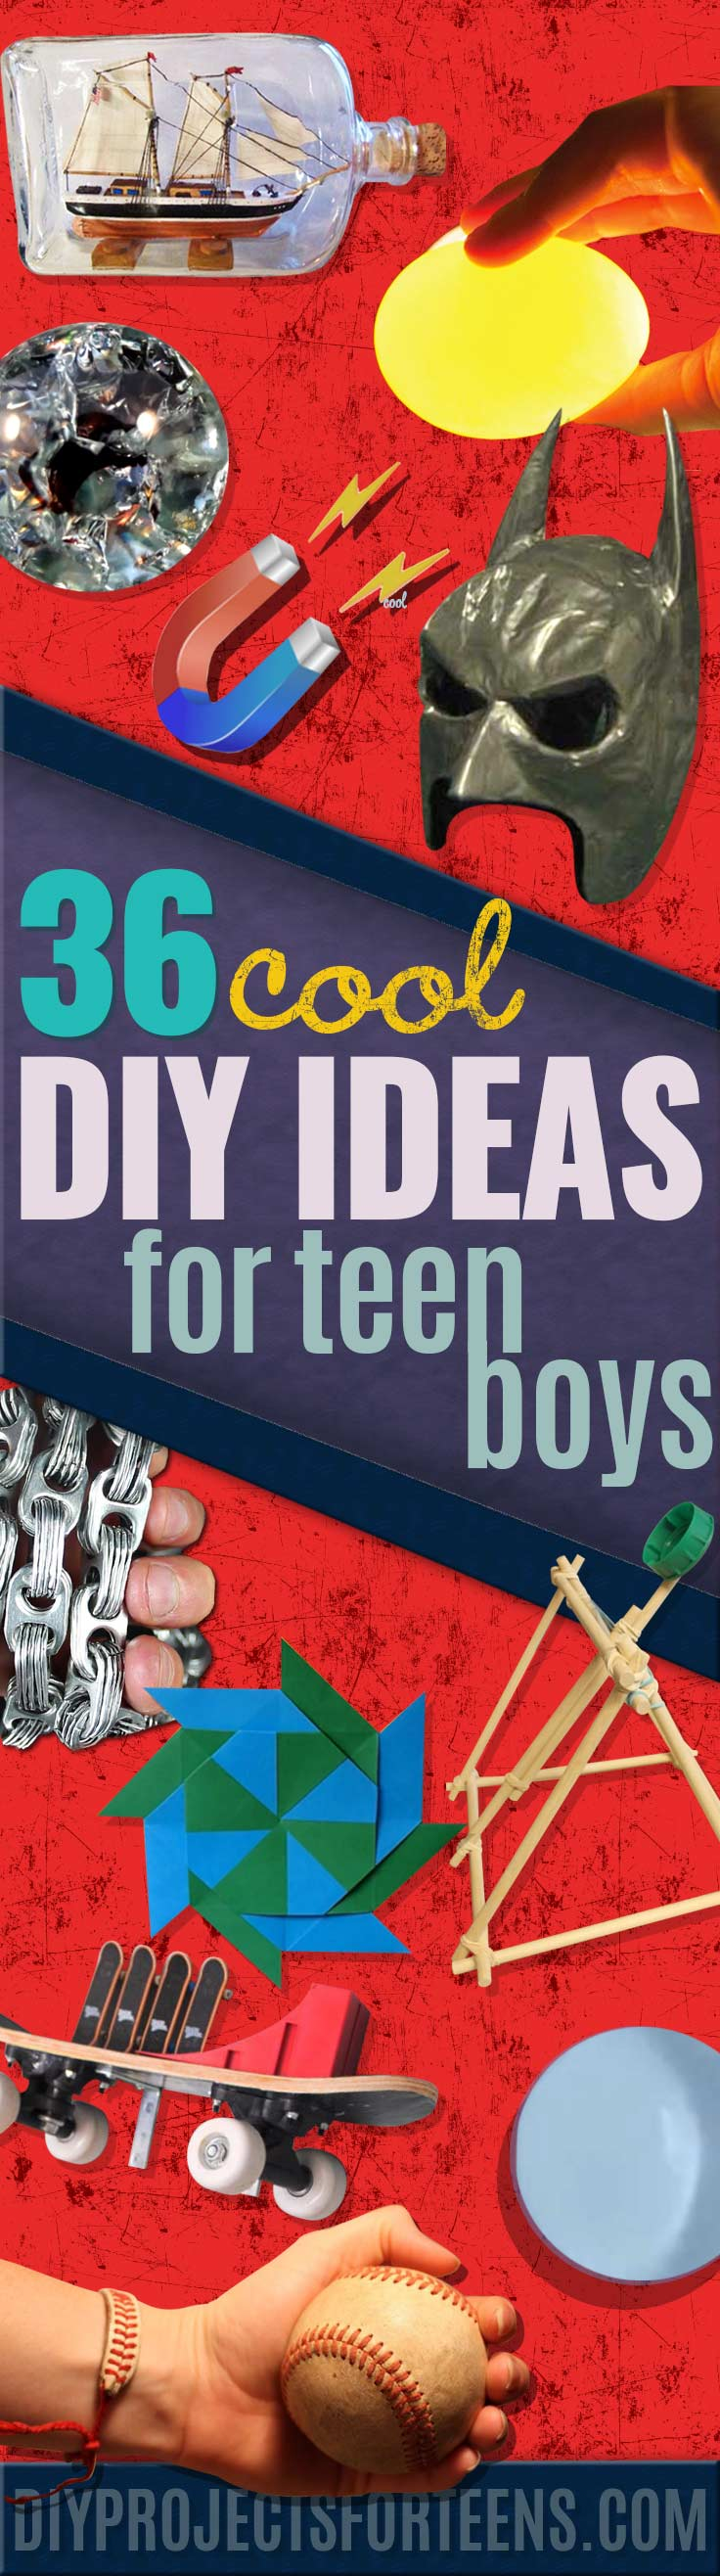 Gadgets gear archives diy projects for teens for Fun at home projects